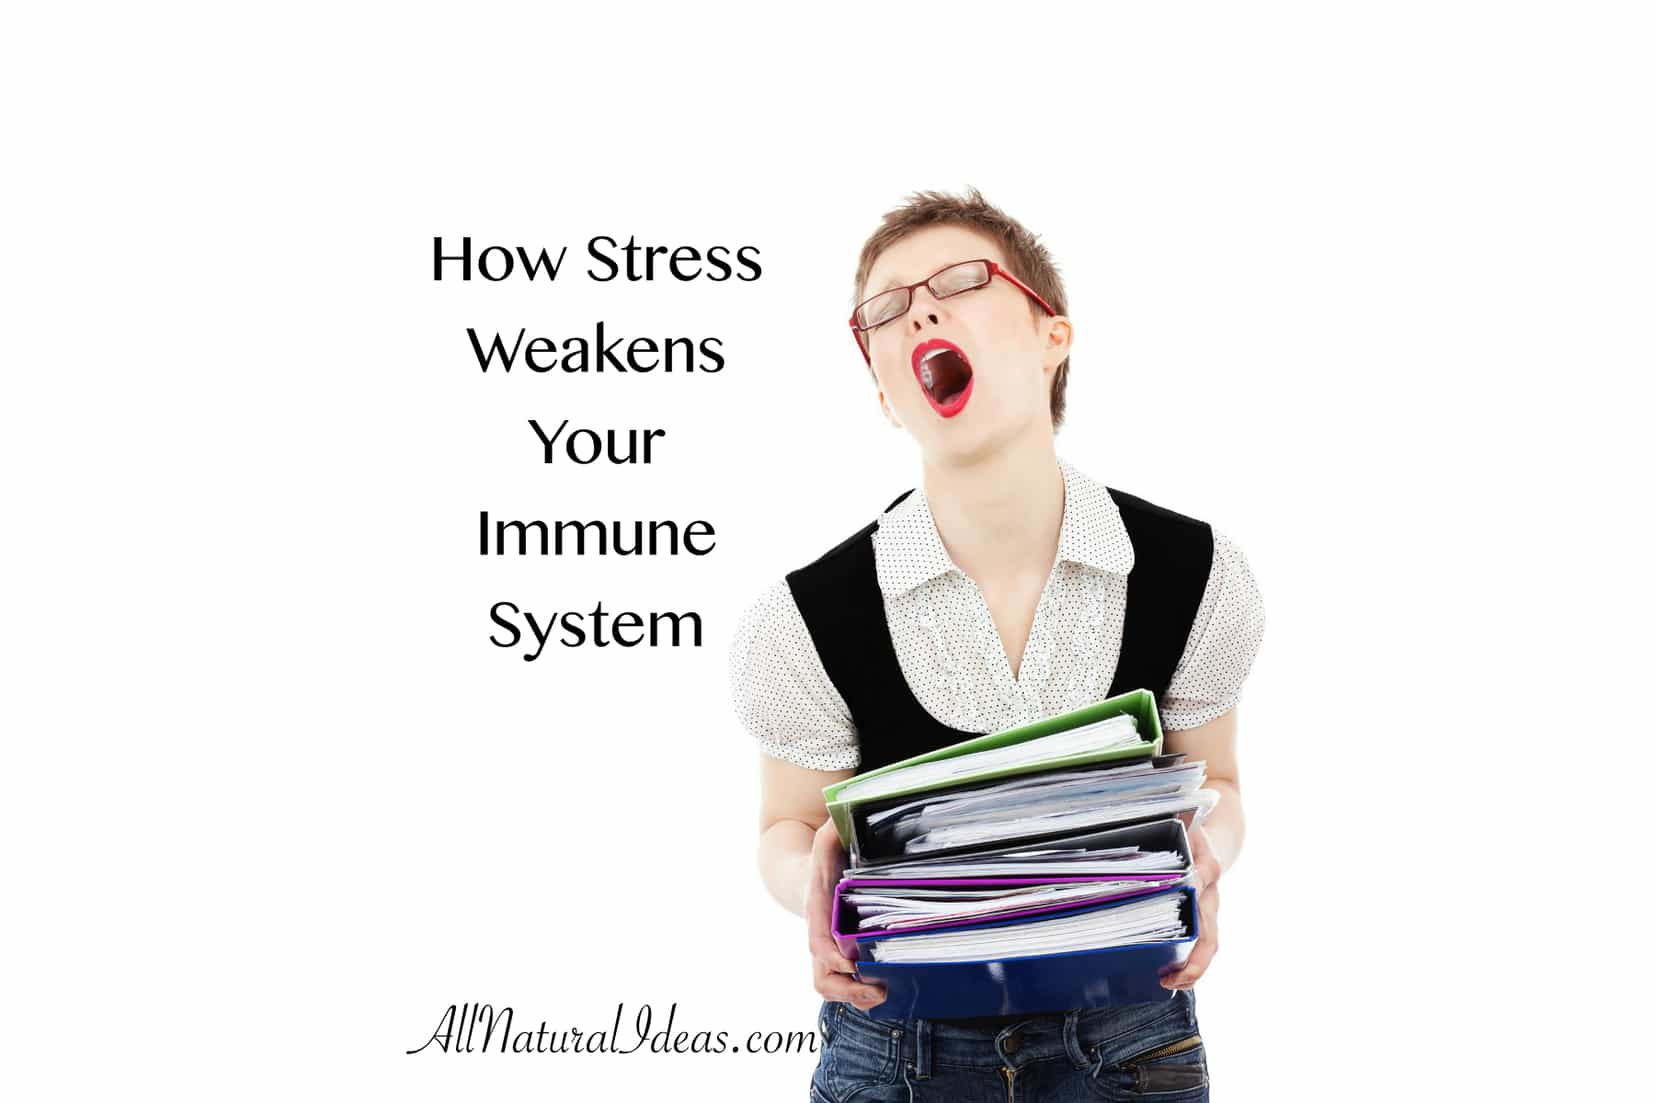 How stress weakens immune system function.